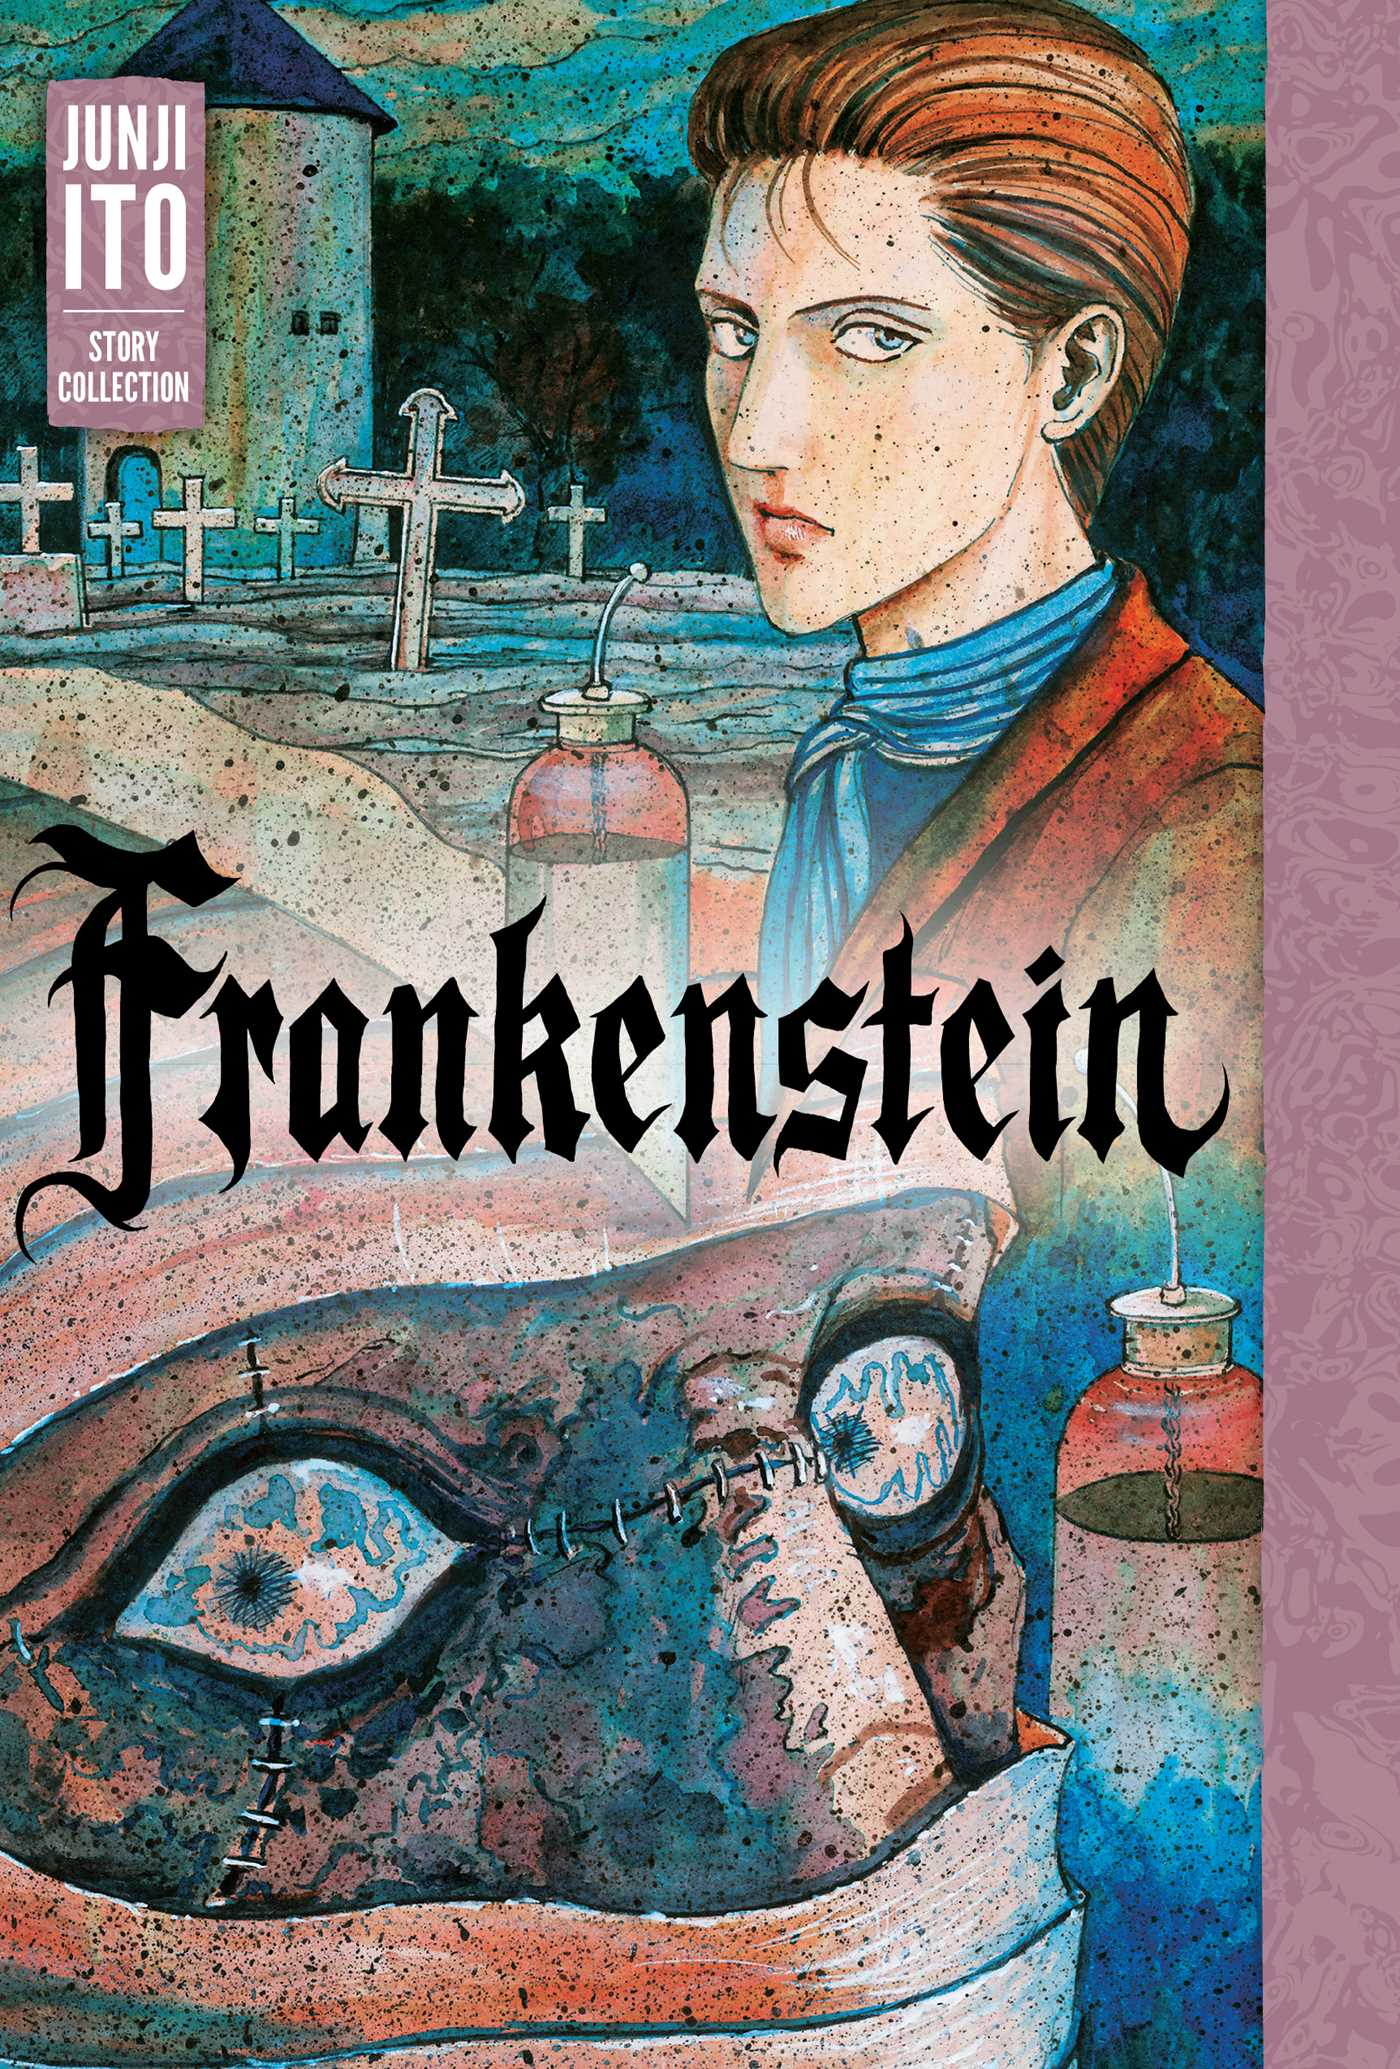 Frankenstein: Junji Ito Story Collection Review